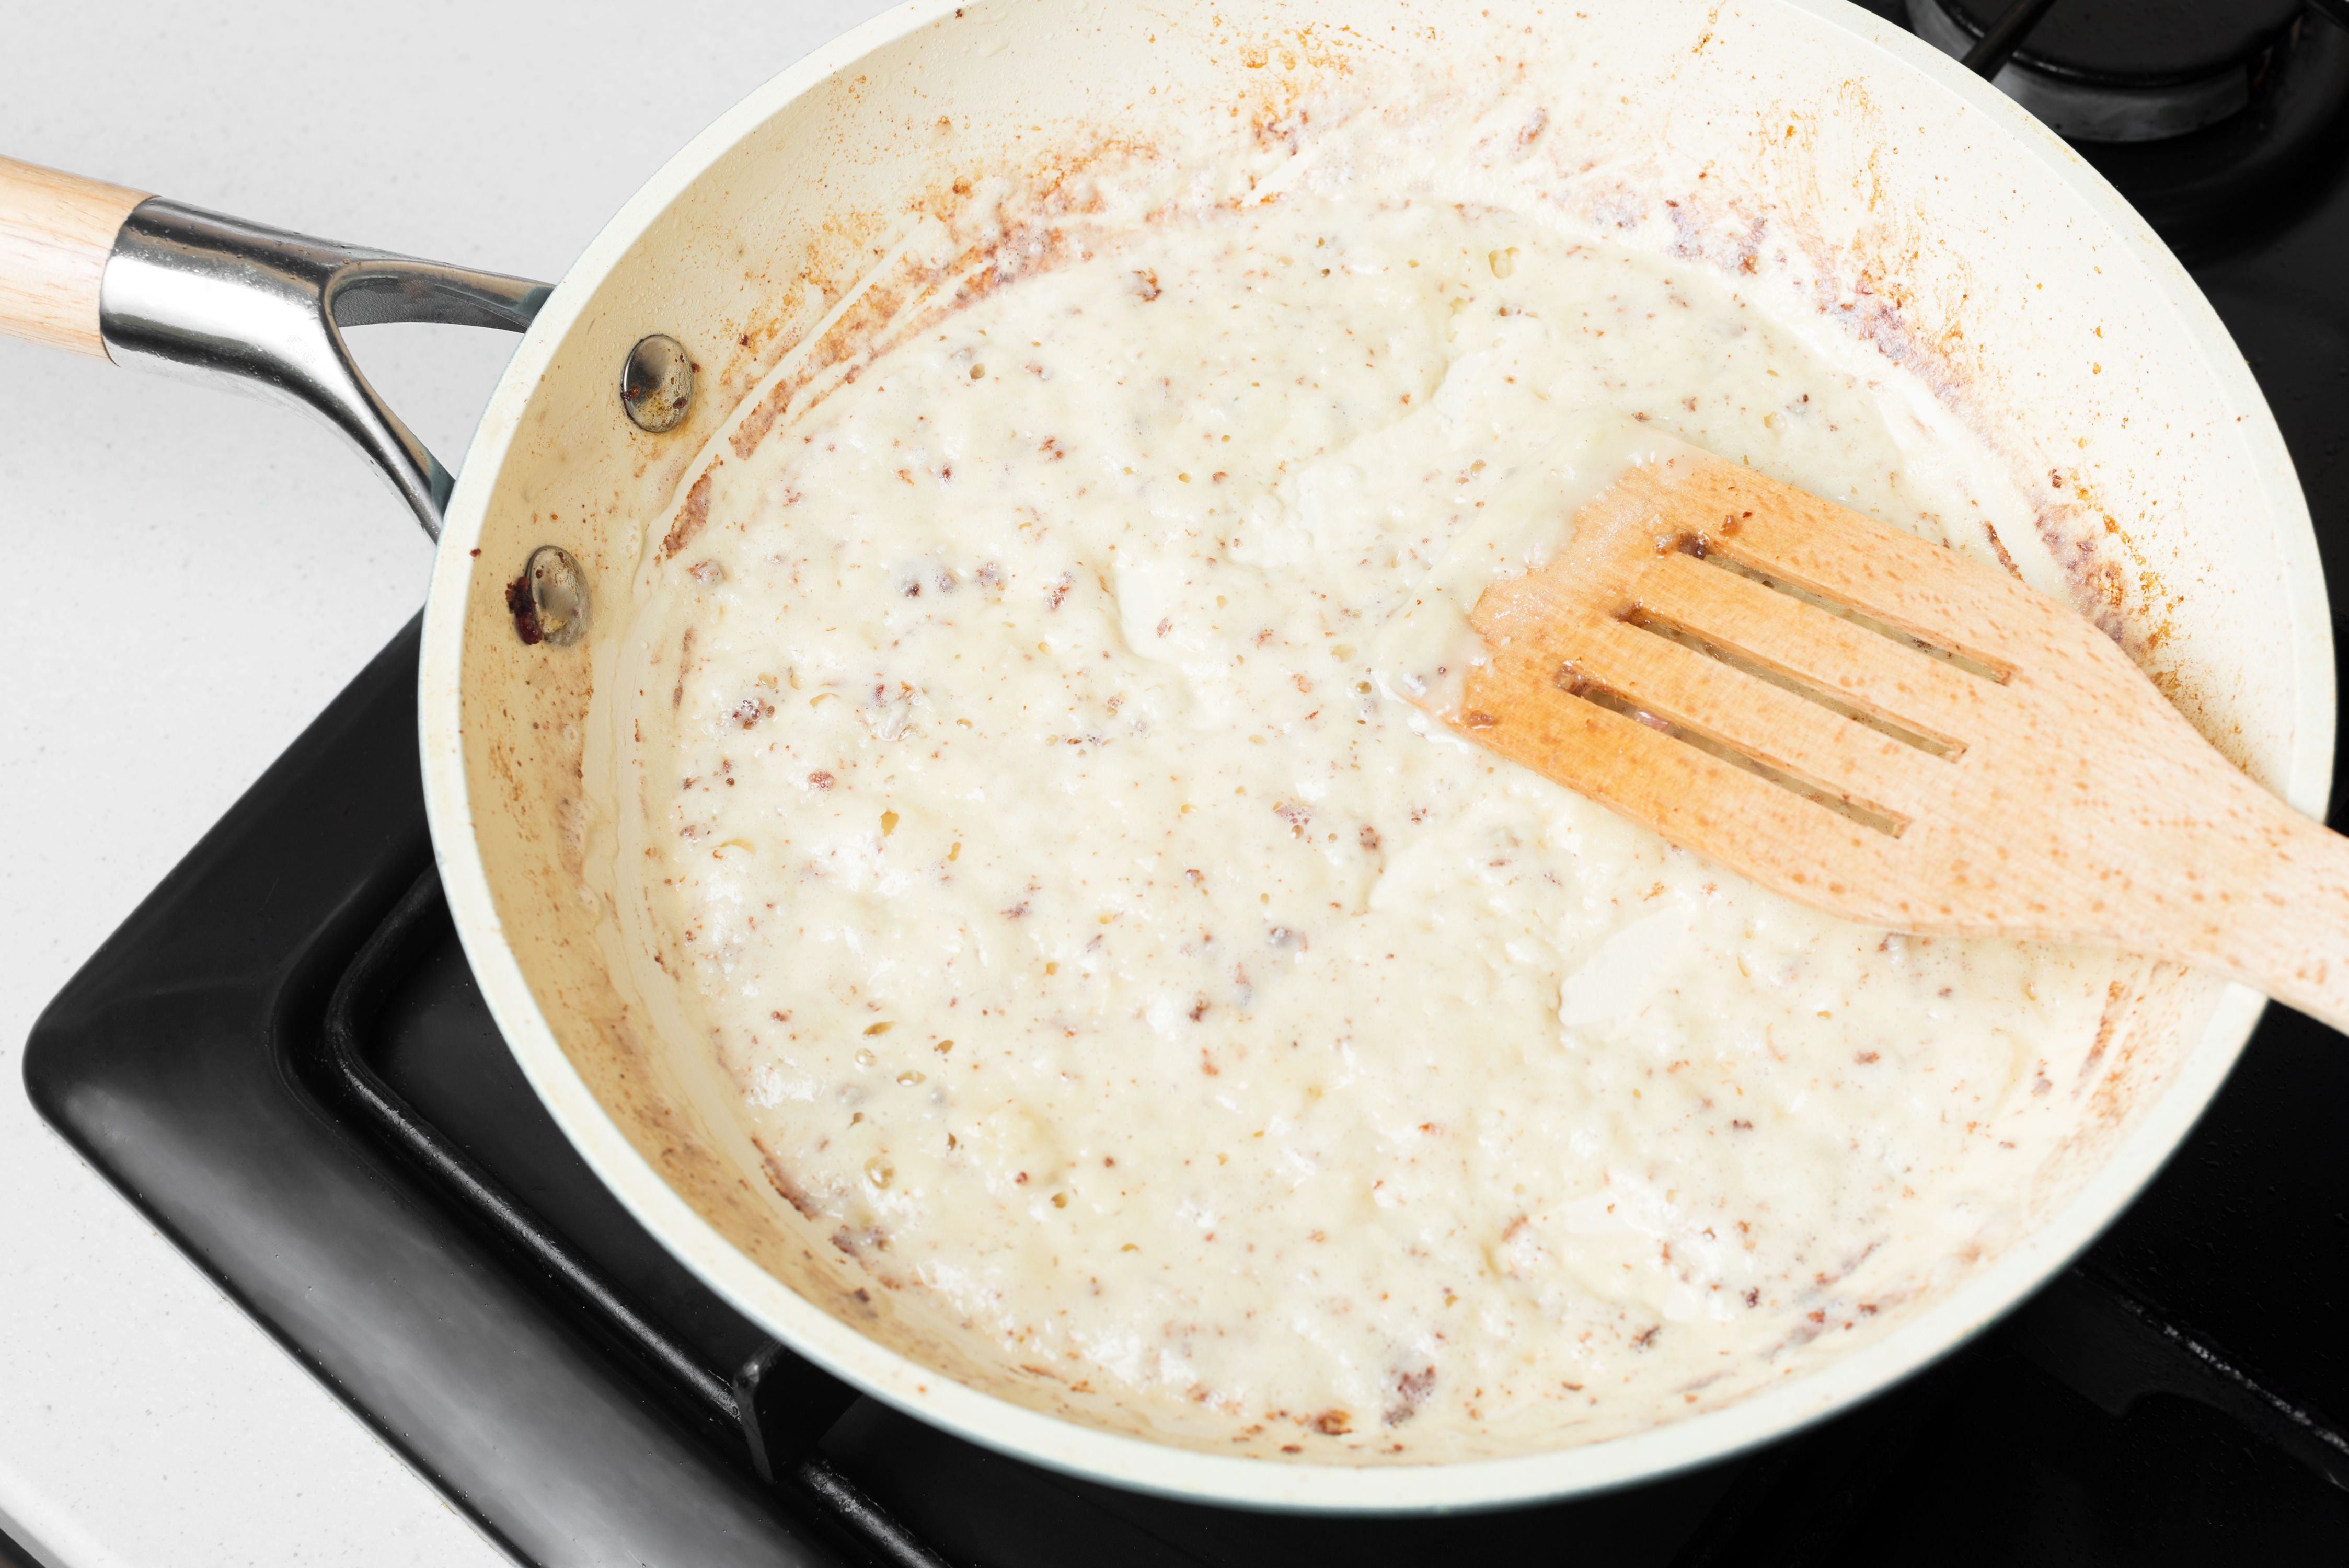 Add oil and flour to drippings in skillet